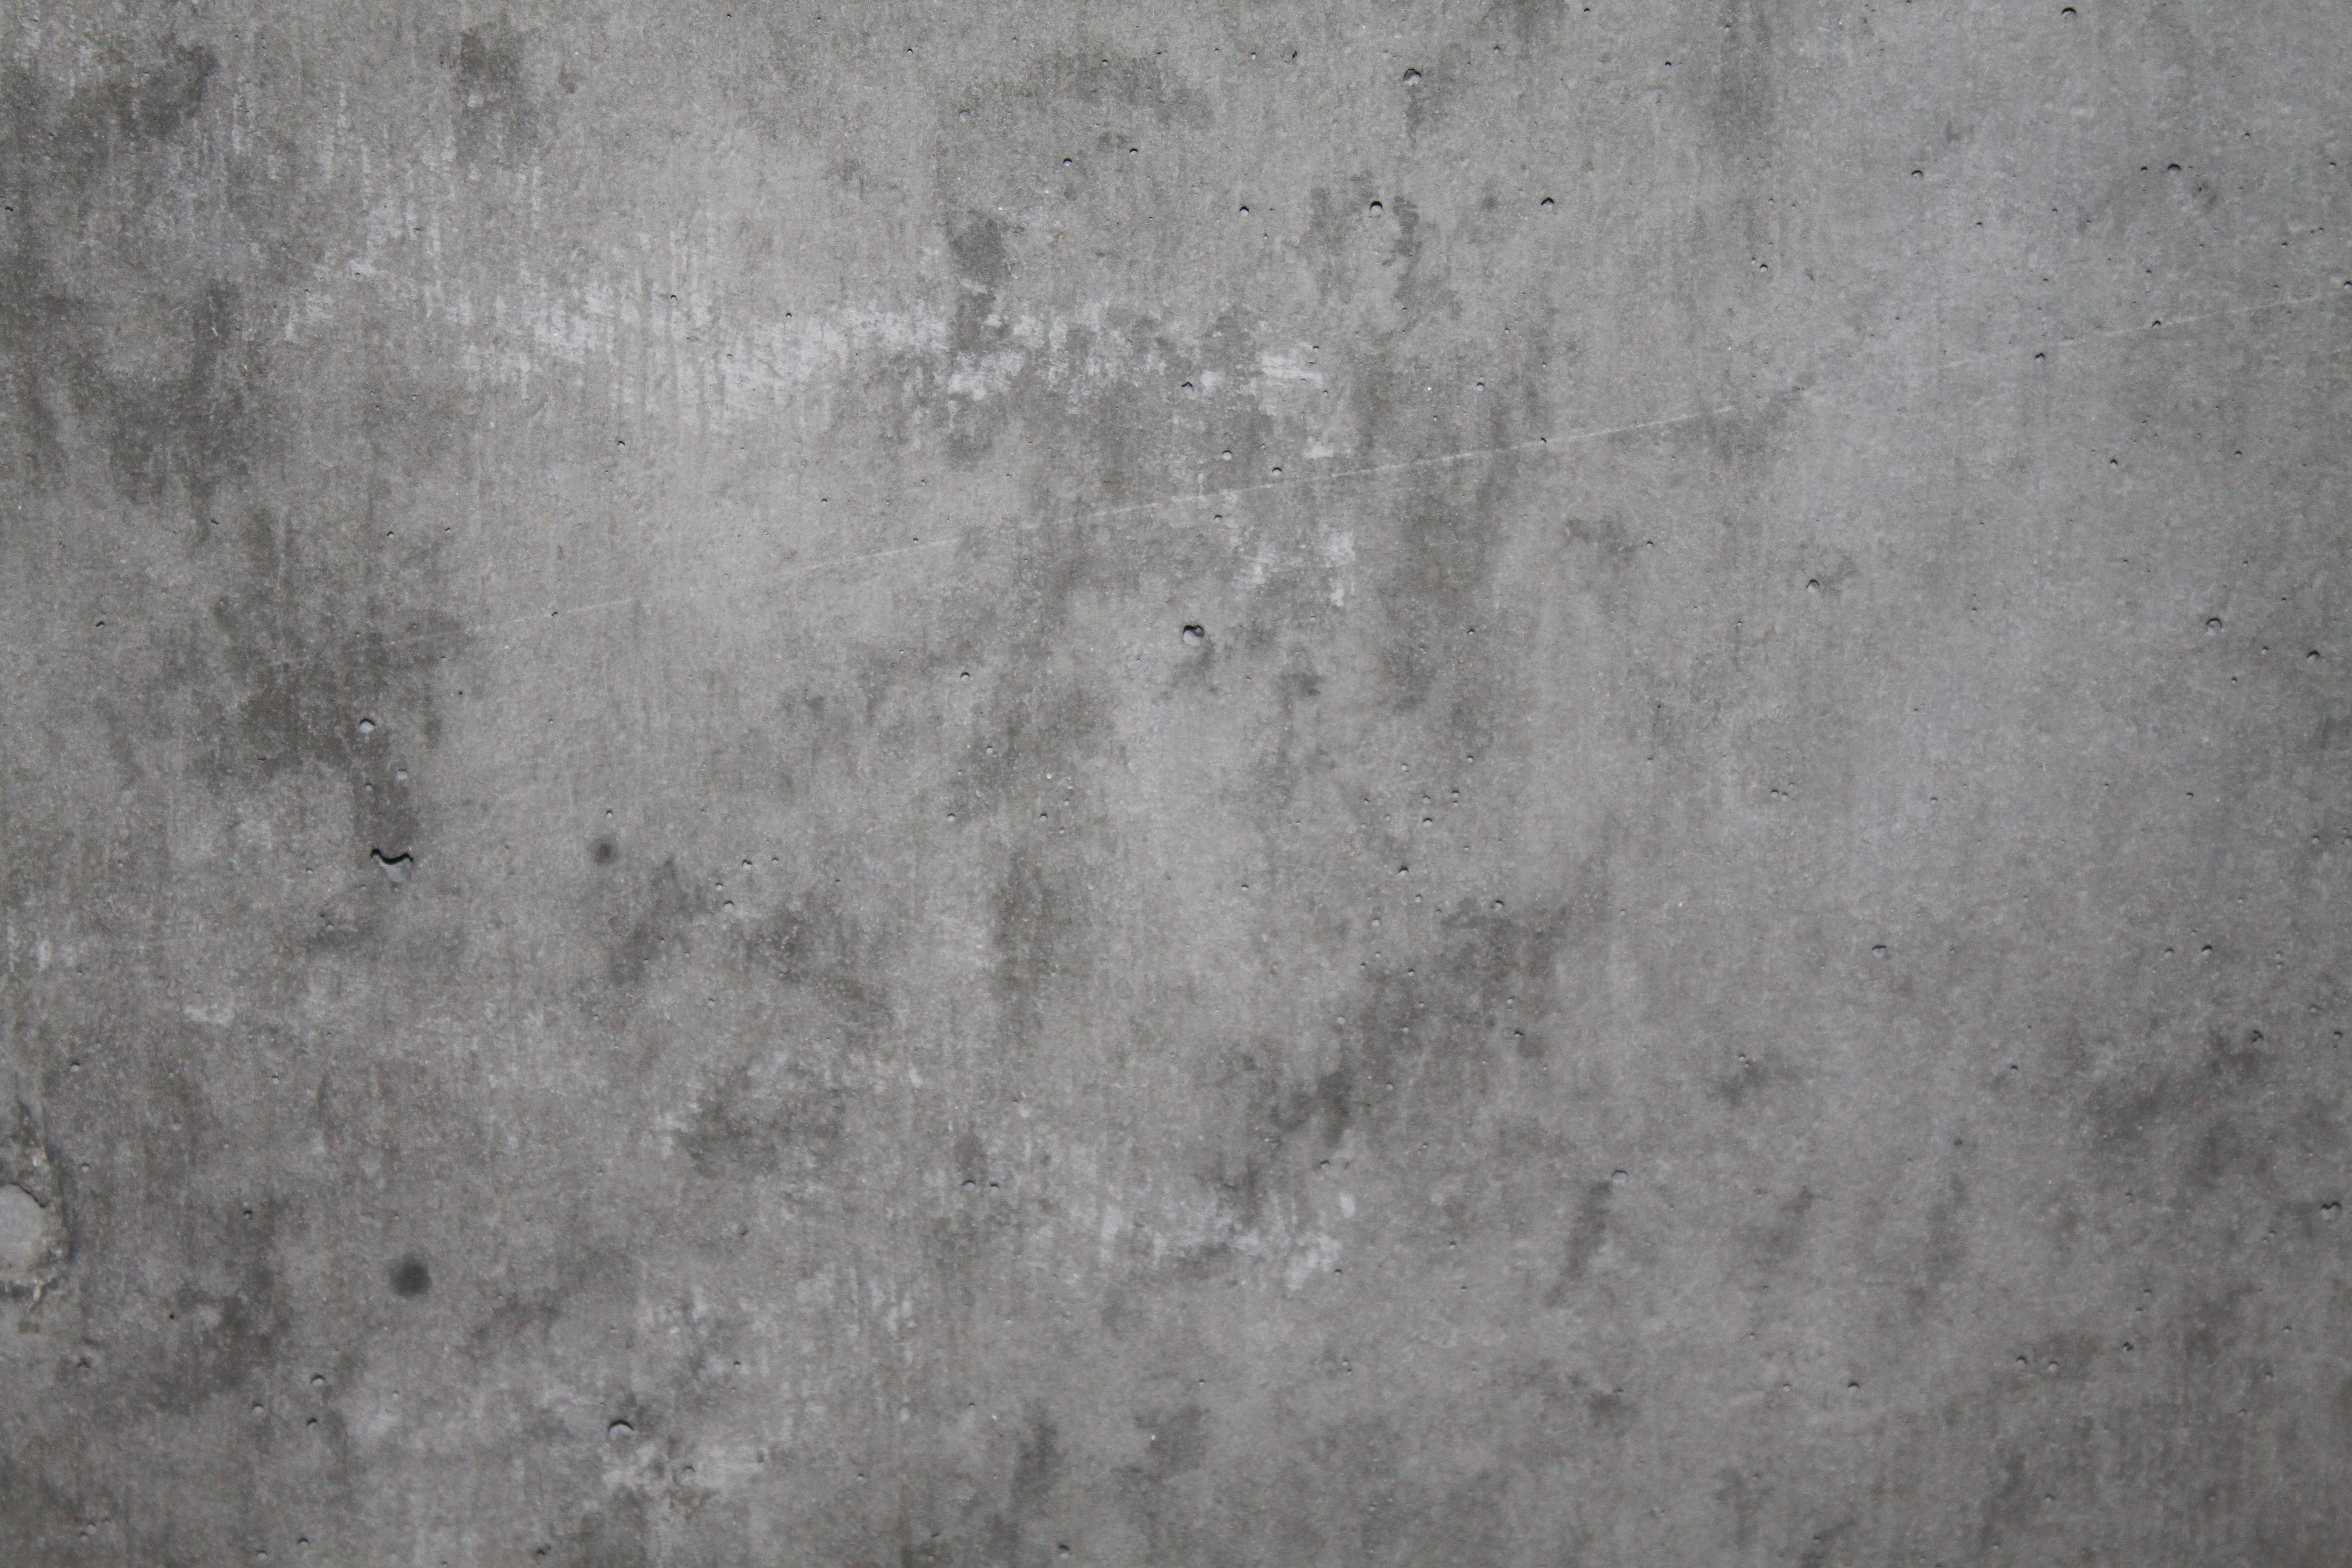 polished concrete texture - Google Search | Concrete in ...